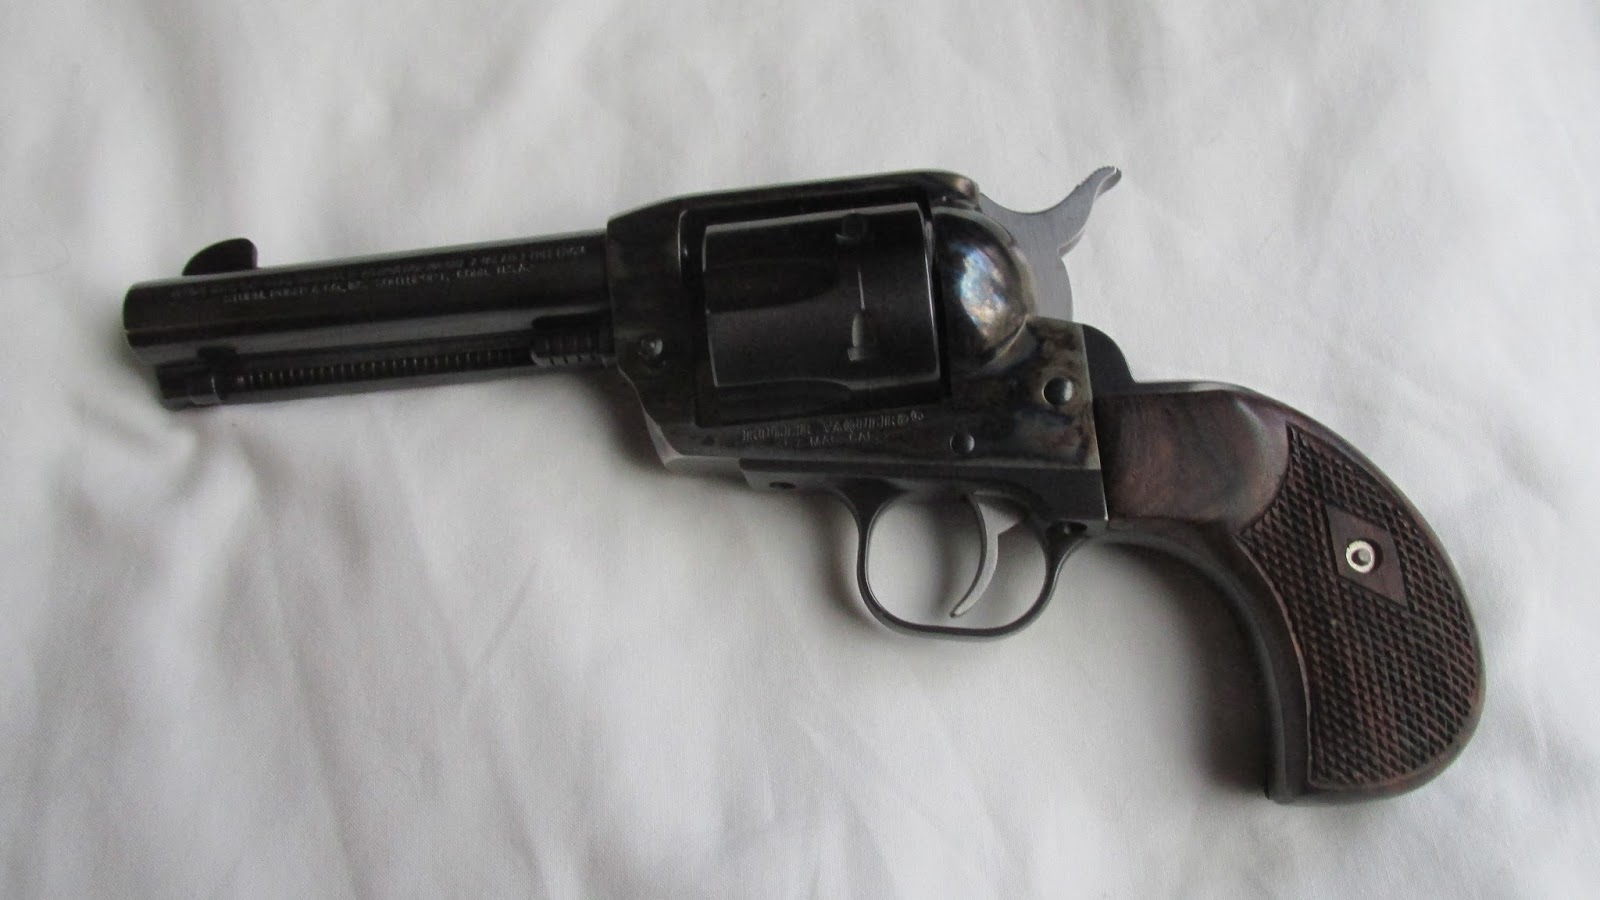 TINCANBANDIT's Gunsmithing: Featured Gun: The Ruger Vaquero